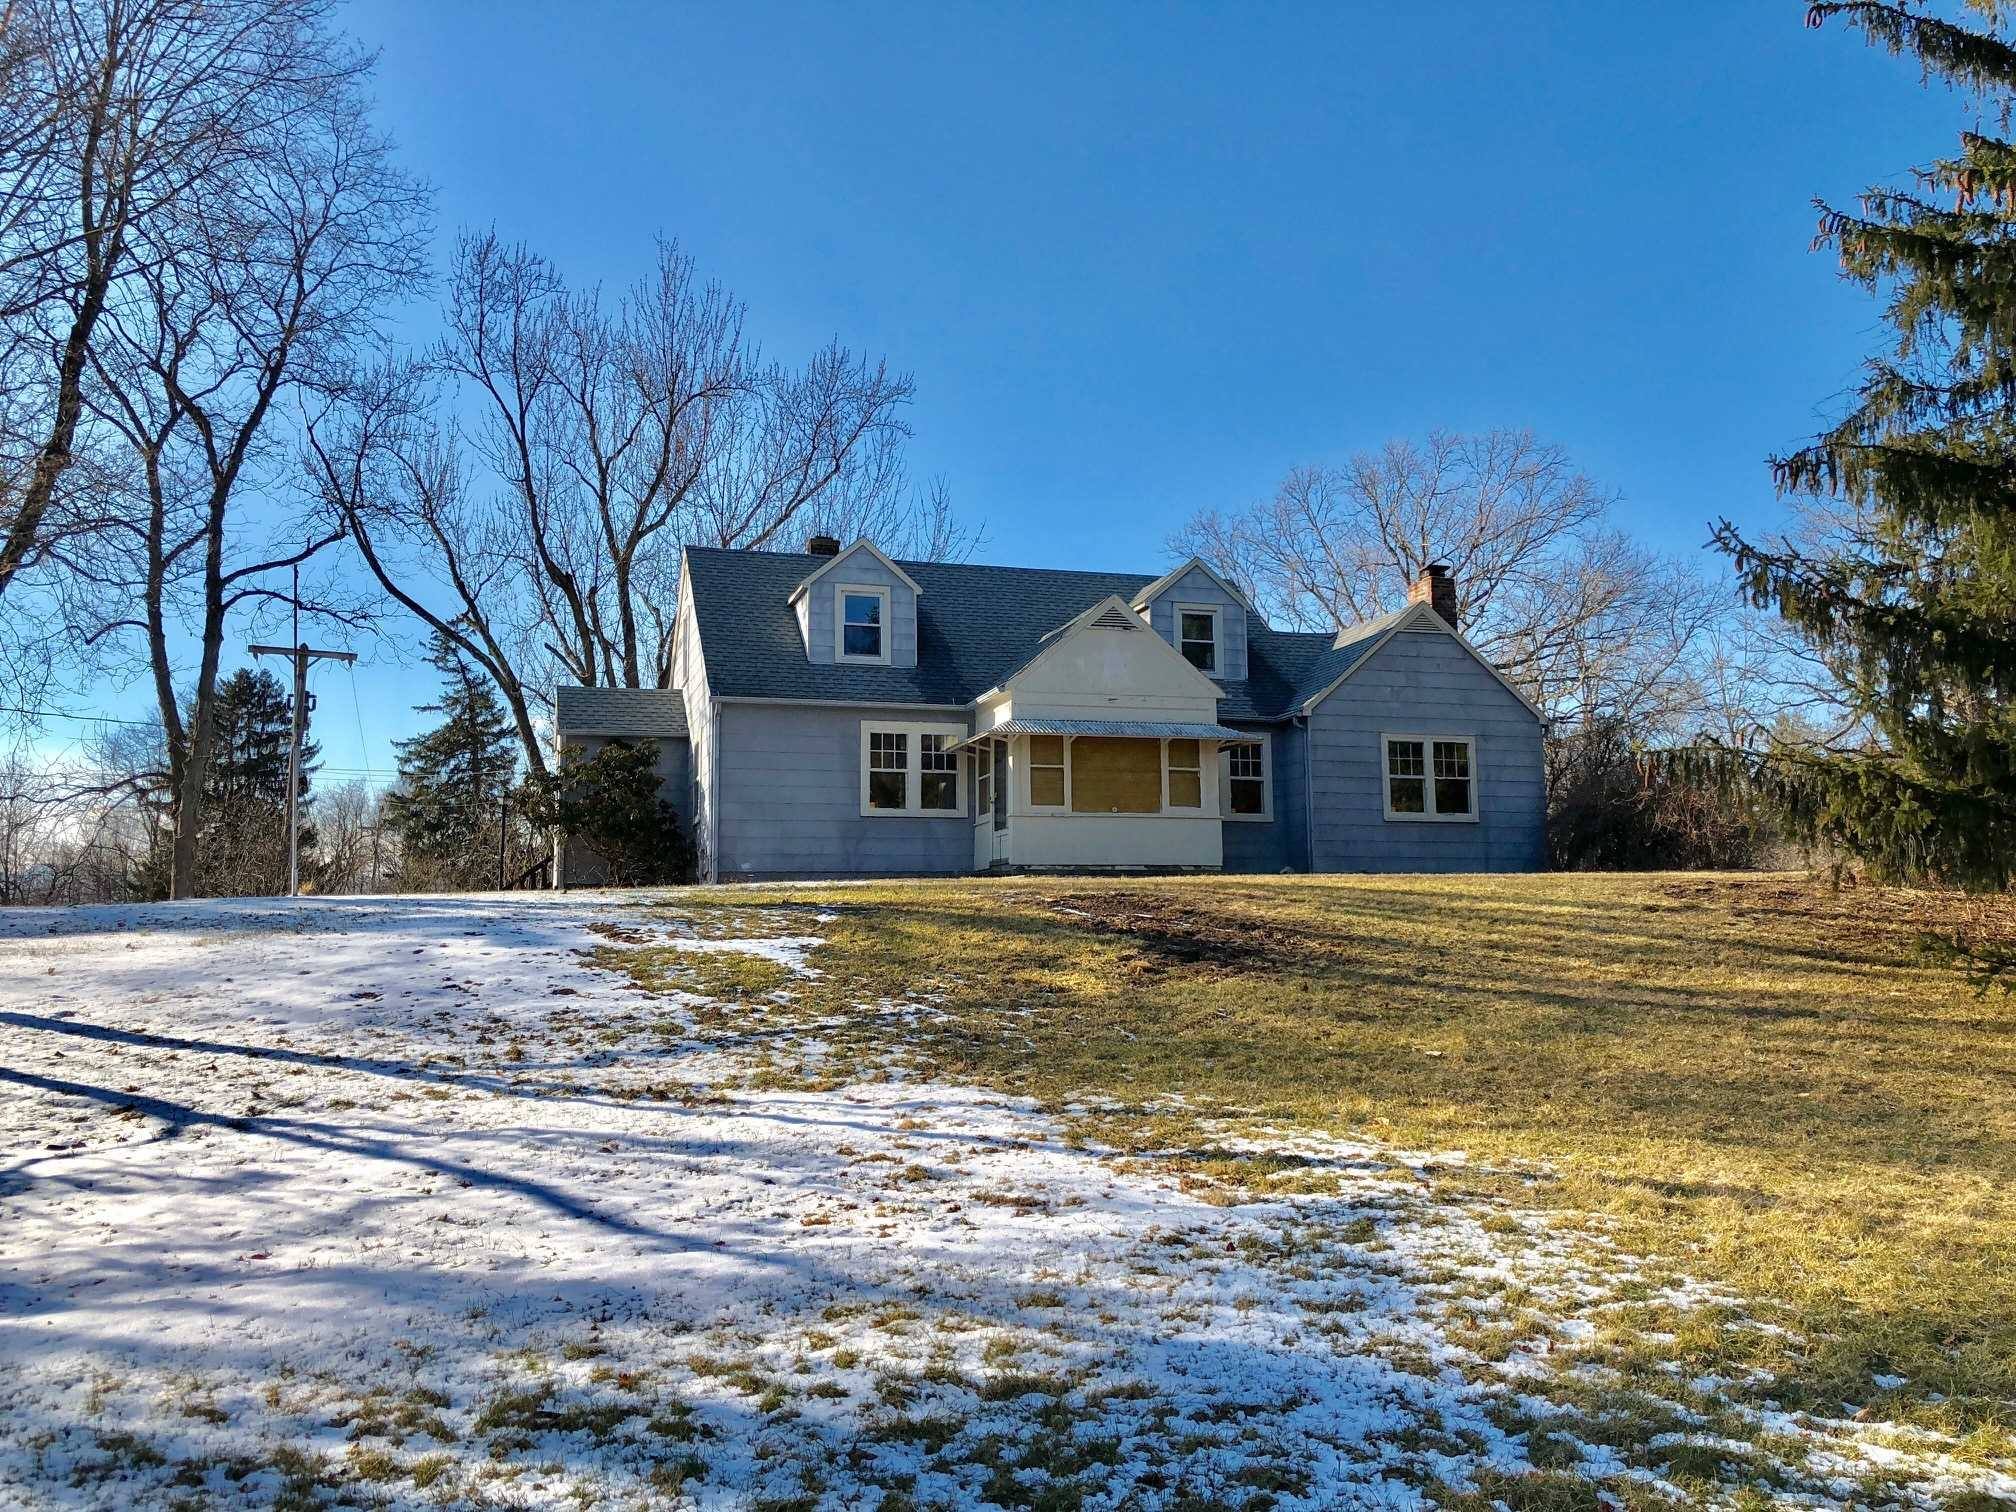 Single Family Home for Sale at 4041 ROUTE 9G 4041 ROUTE 9G Germantown, New York 12526 United States